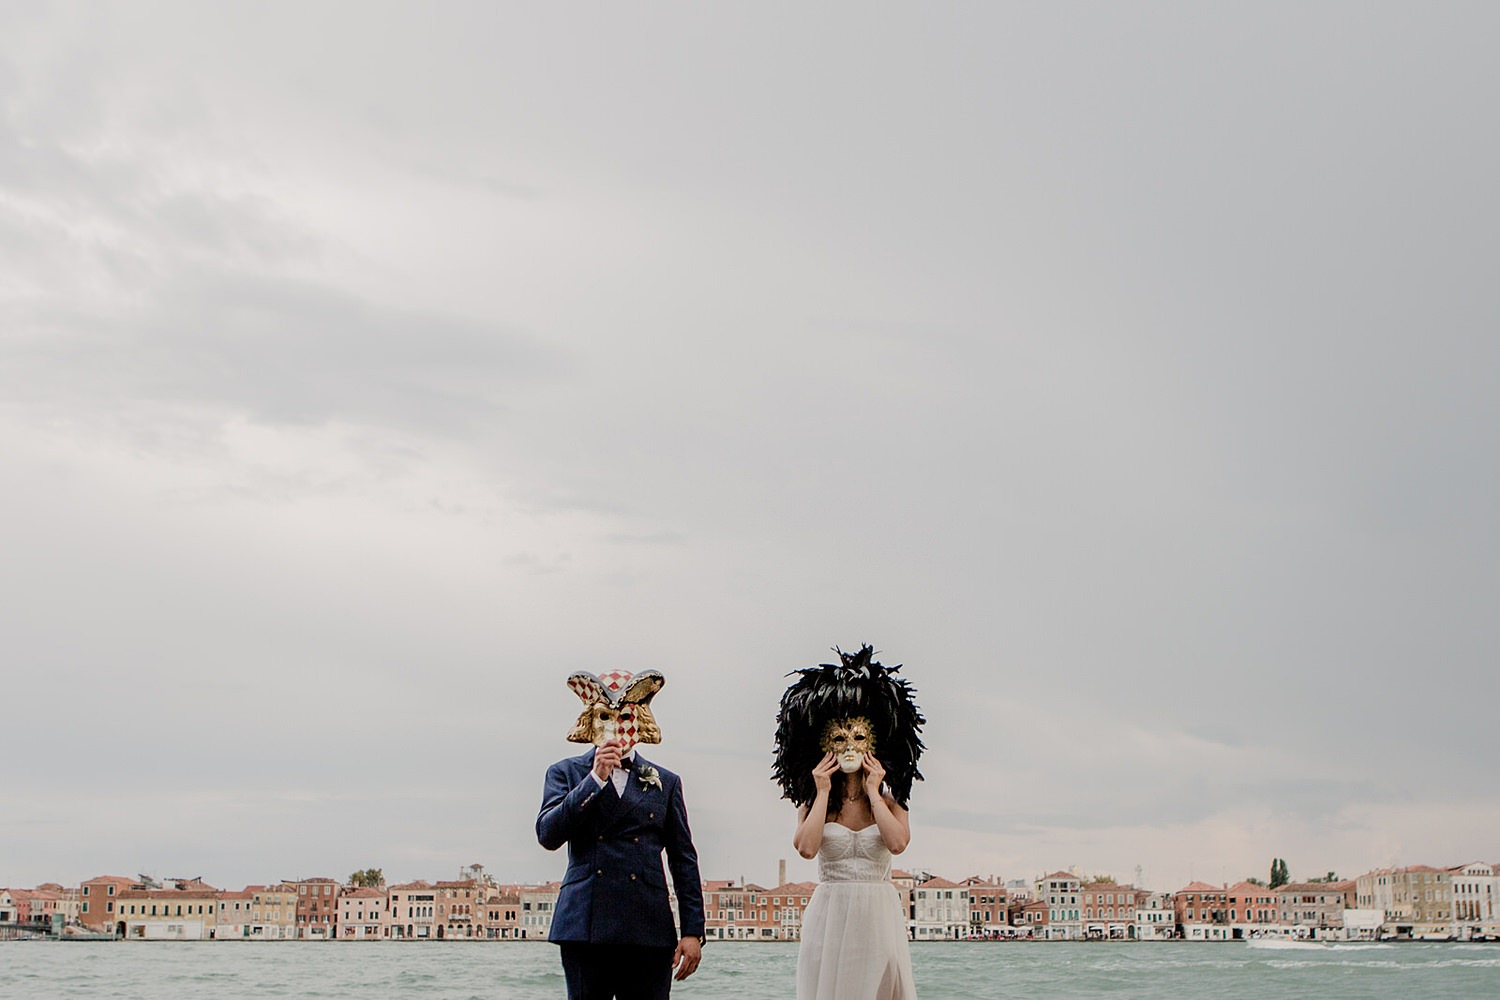 003-Venice-Intimate-Wedding.jpg